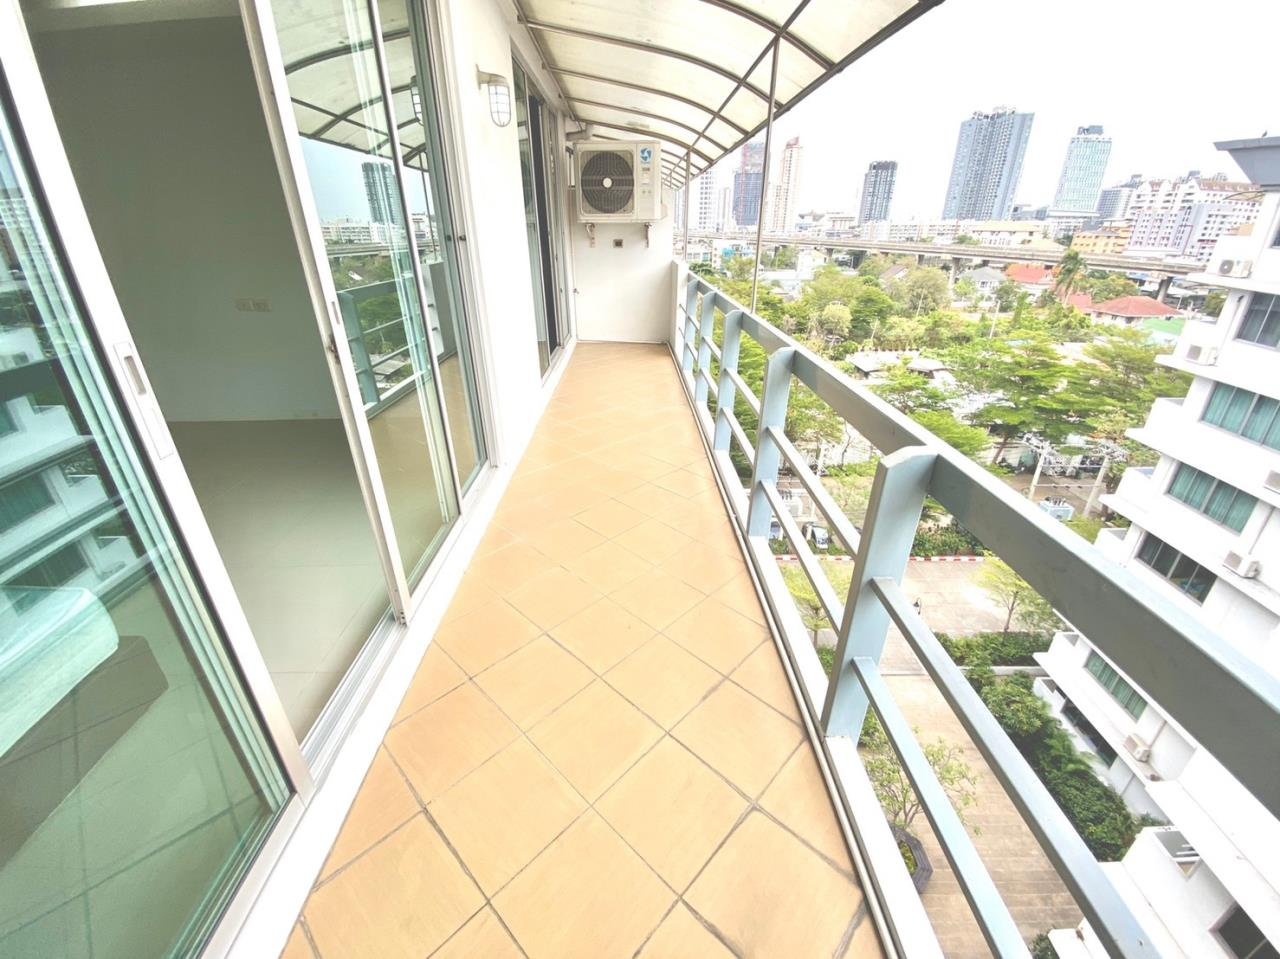 Bestbkkcondos Agency's Waterford 50 2 bedrooms 2 bathrooms 96.8 sqm. 8th Floor for sale 6.582mTHB Rental 28000THB 11